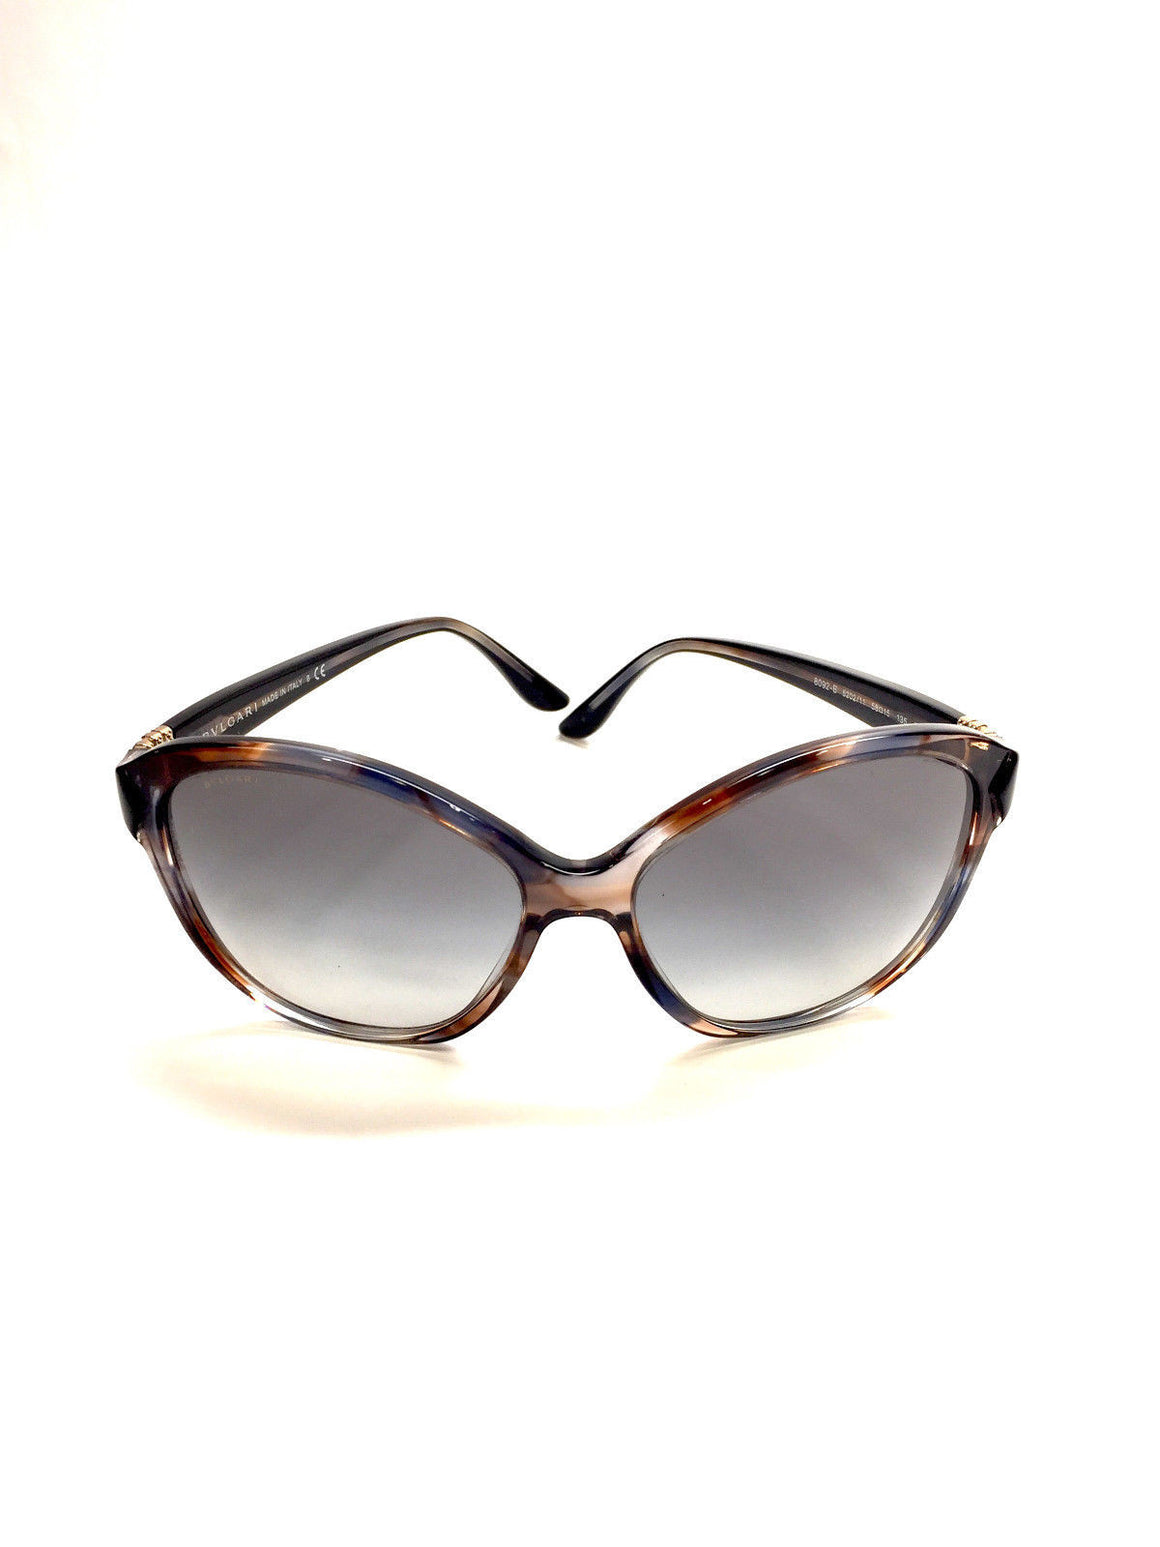 bisbiz.com BVLGARI  Style: #8092-B 5202/11  Brown/Blue Moc-Tortoise Frame Blue-Tint Lenses  Crystal Detail Sunglasses/Case - Bis Luxury Resale